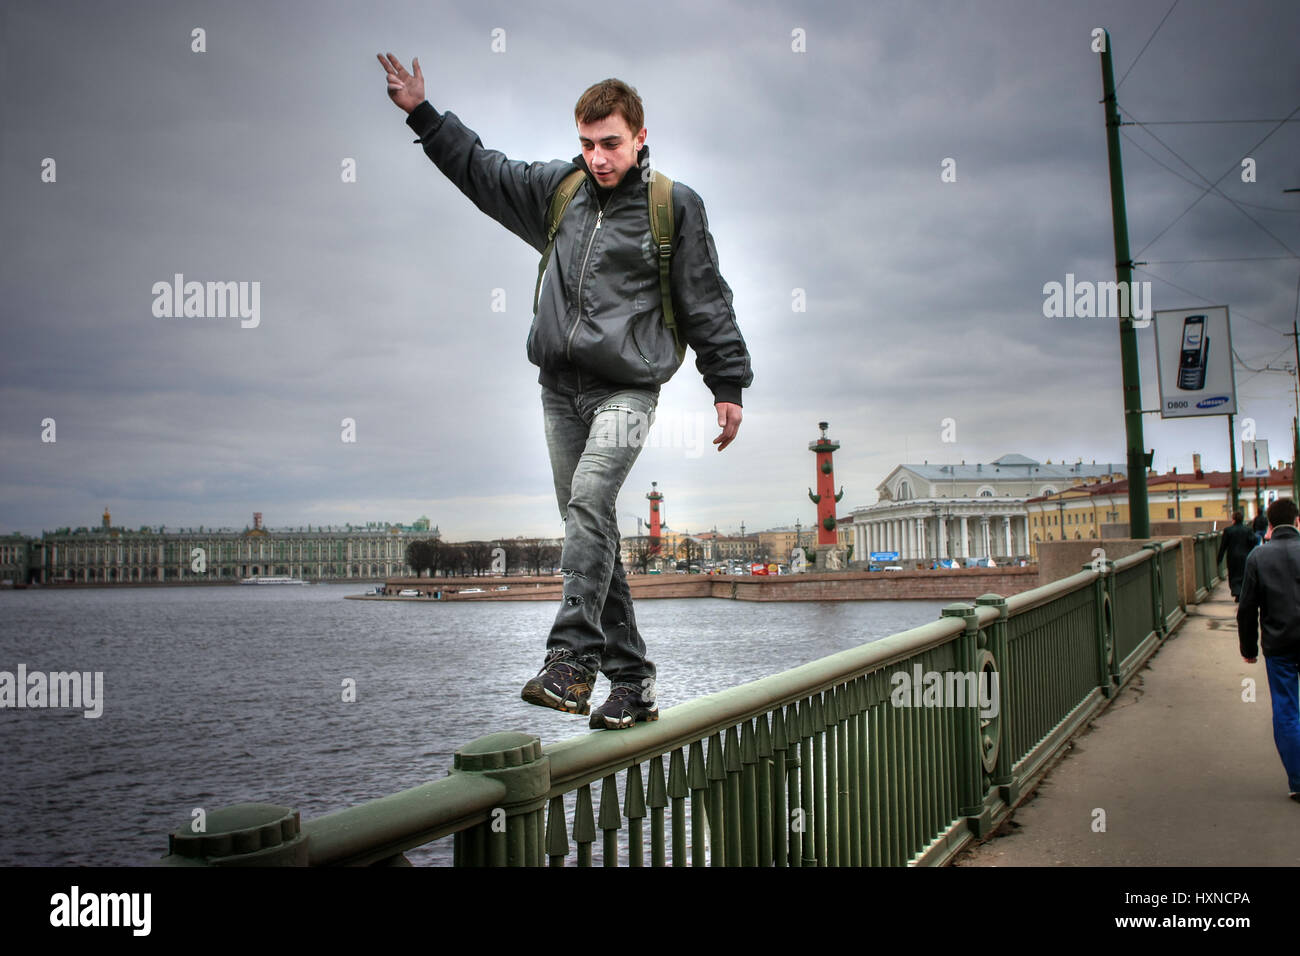 St. Petersburg, Russia - April 22, 2006: Young man is walking on thin parapet high bridge. - Stock Image